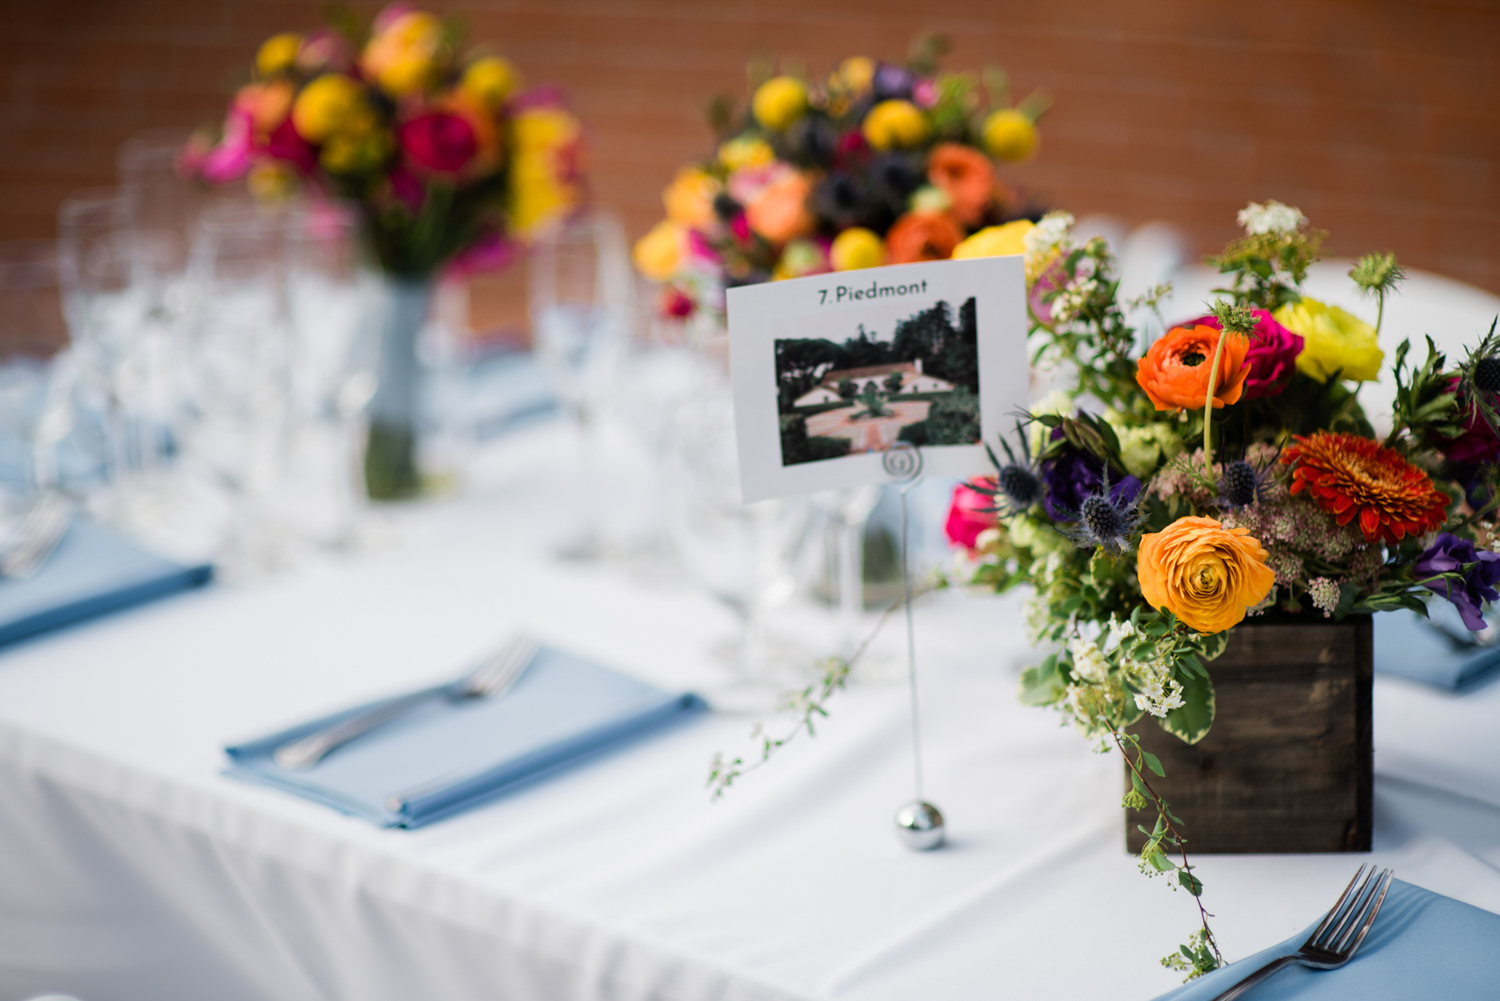 Spring_Piedmont_Community_Hall_Wedding_033.jpg